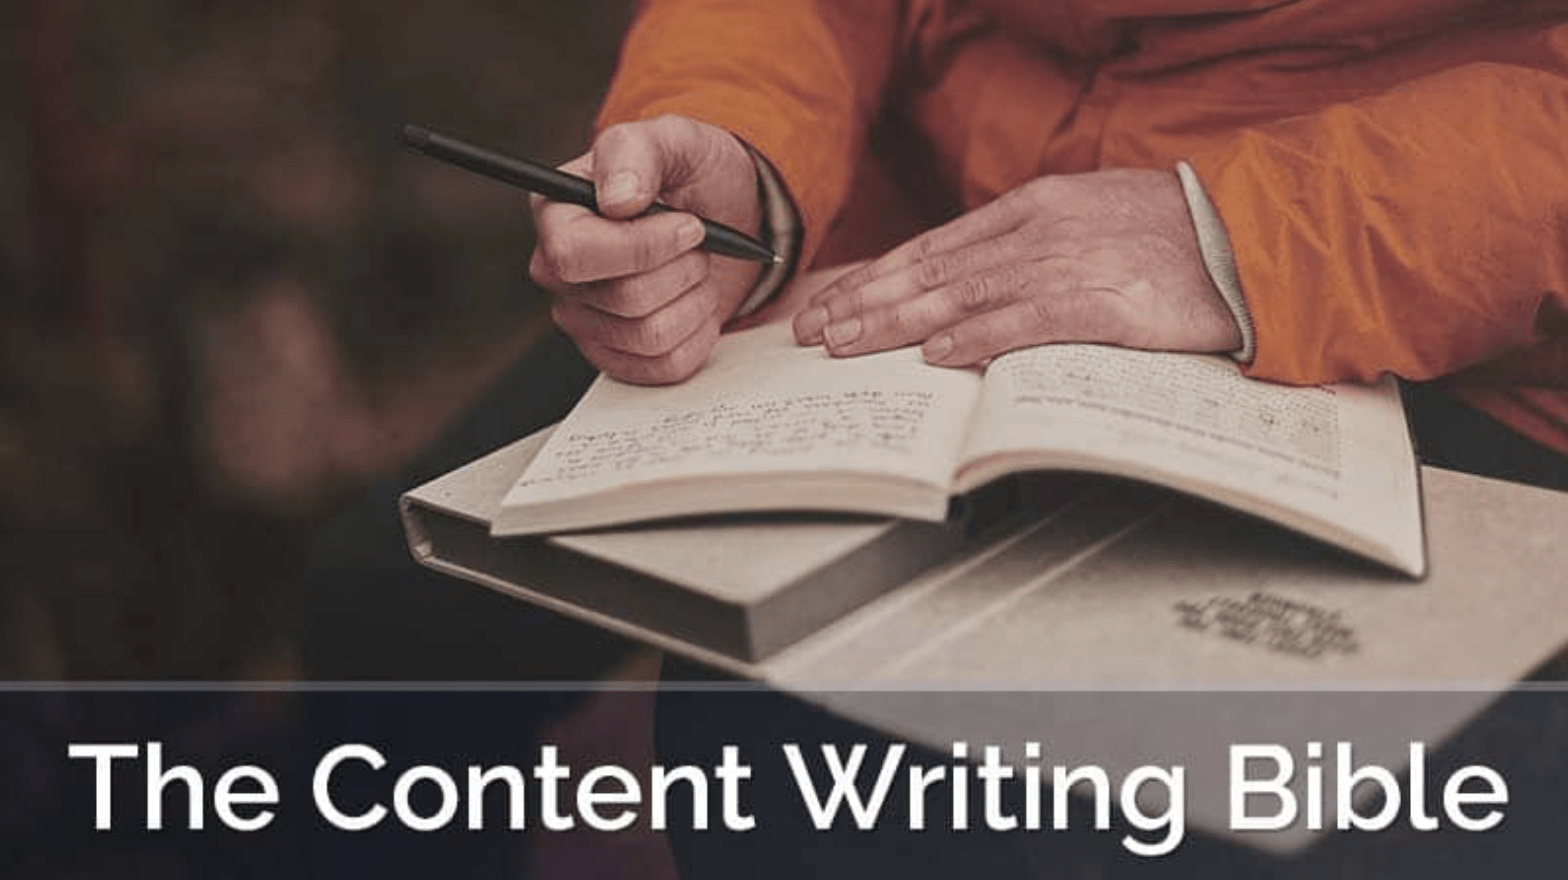 Content writer using a journal to take some notes with a pen